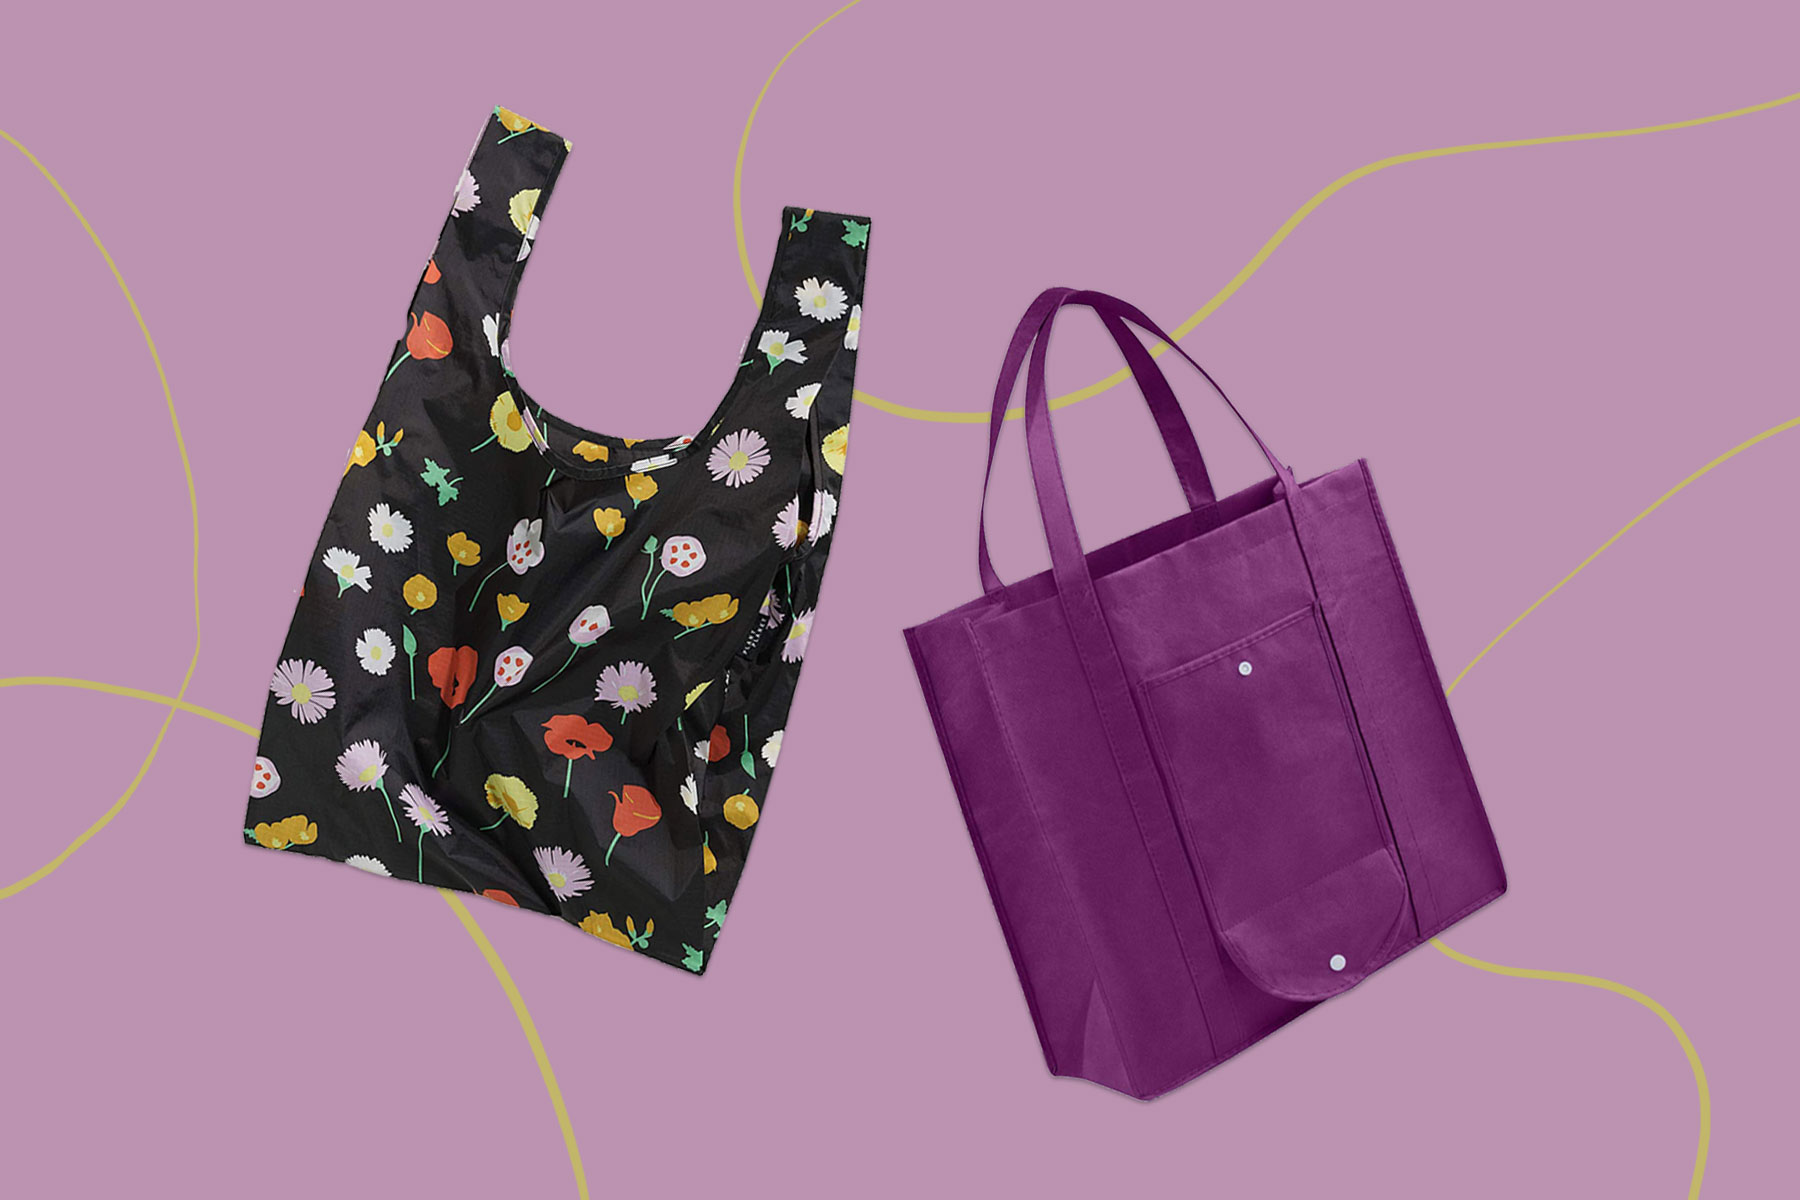 Black, floral, and and purple tote bags